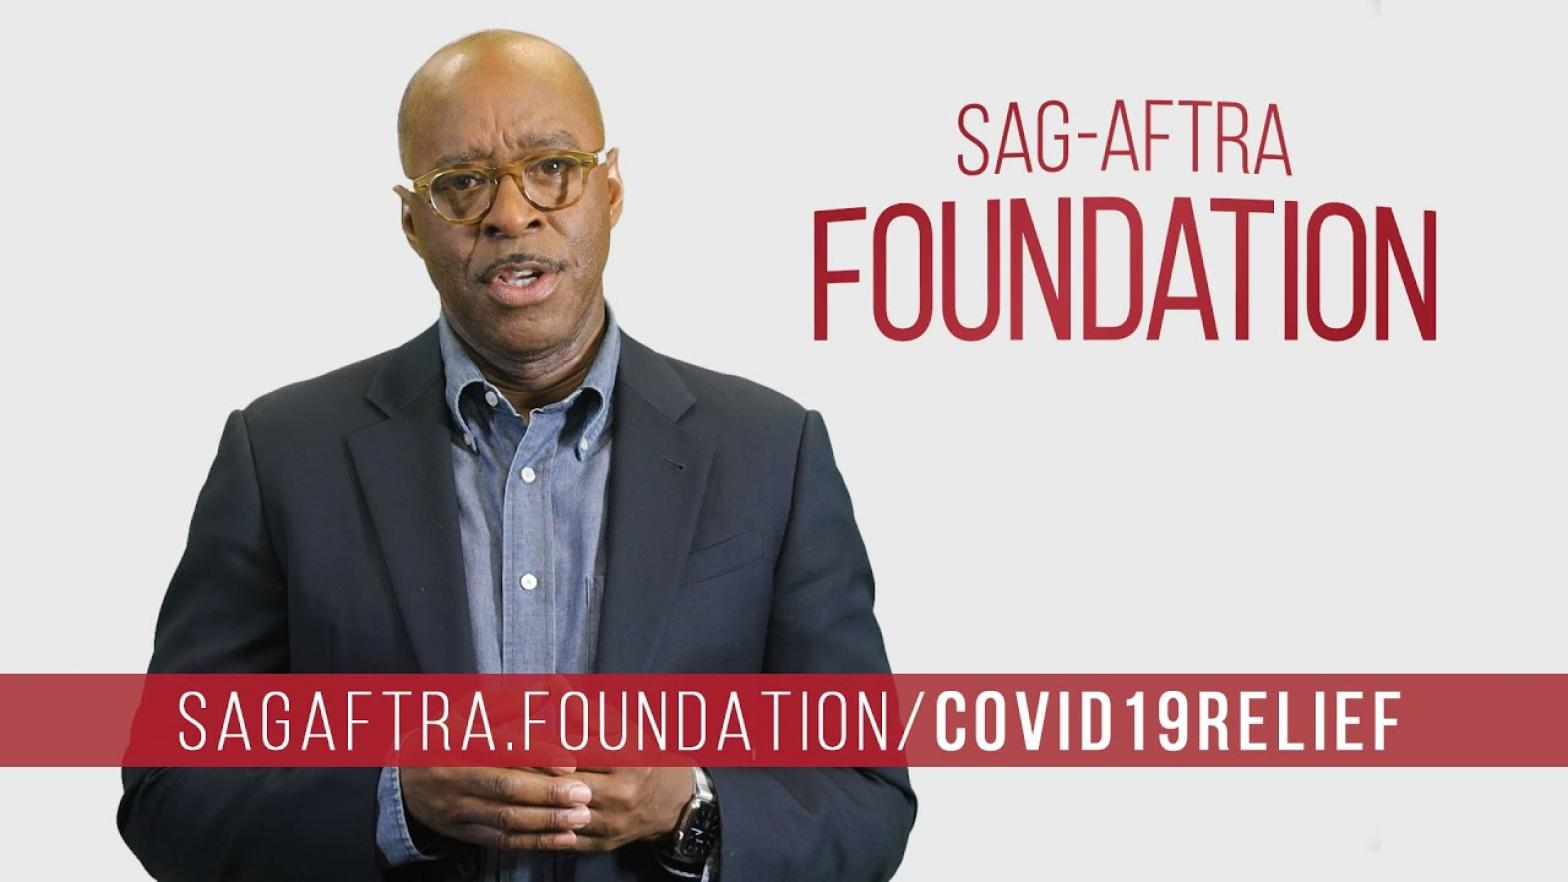 SAG-AFTRA Foundation President Courtney B. Vance speaking about the SAG-AFTRA Foundation COVID-19 Disaster Relief